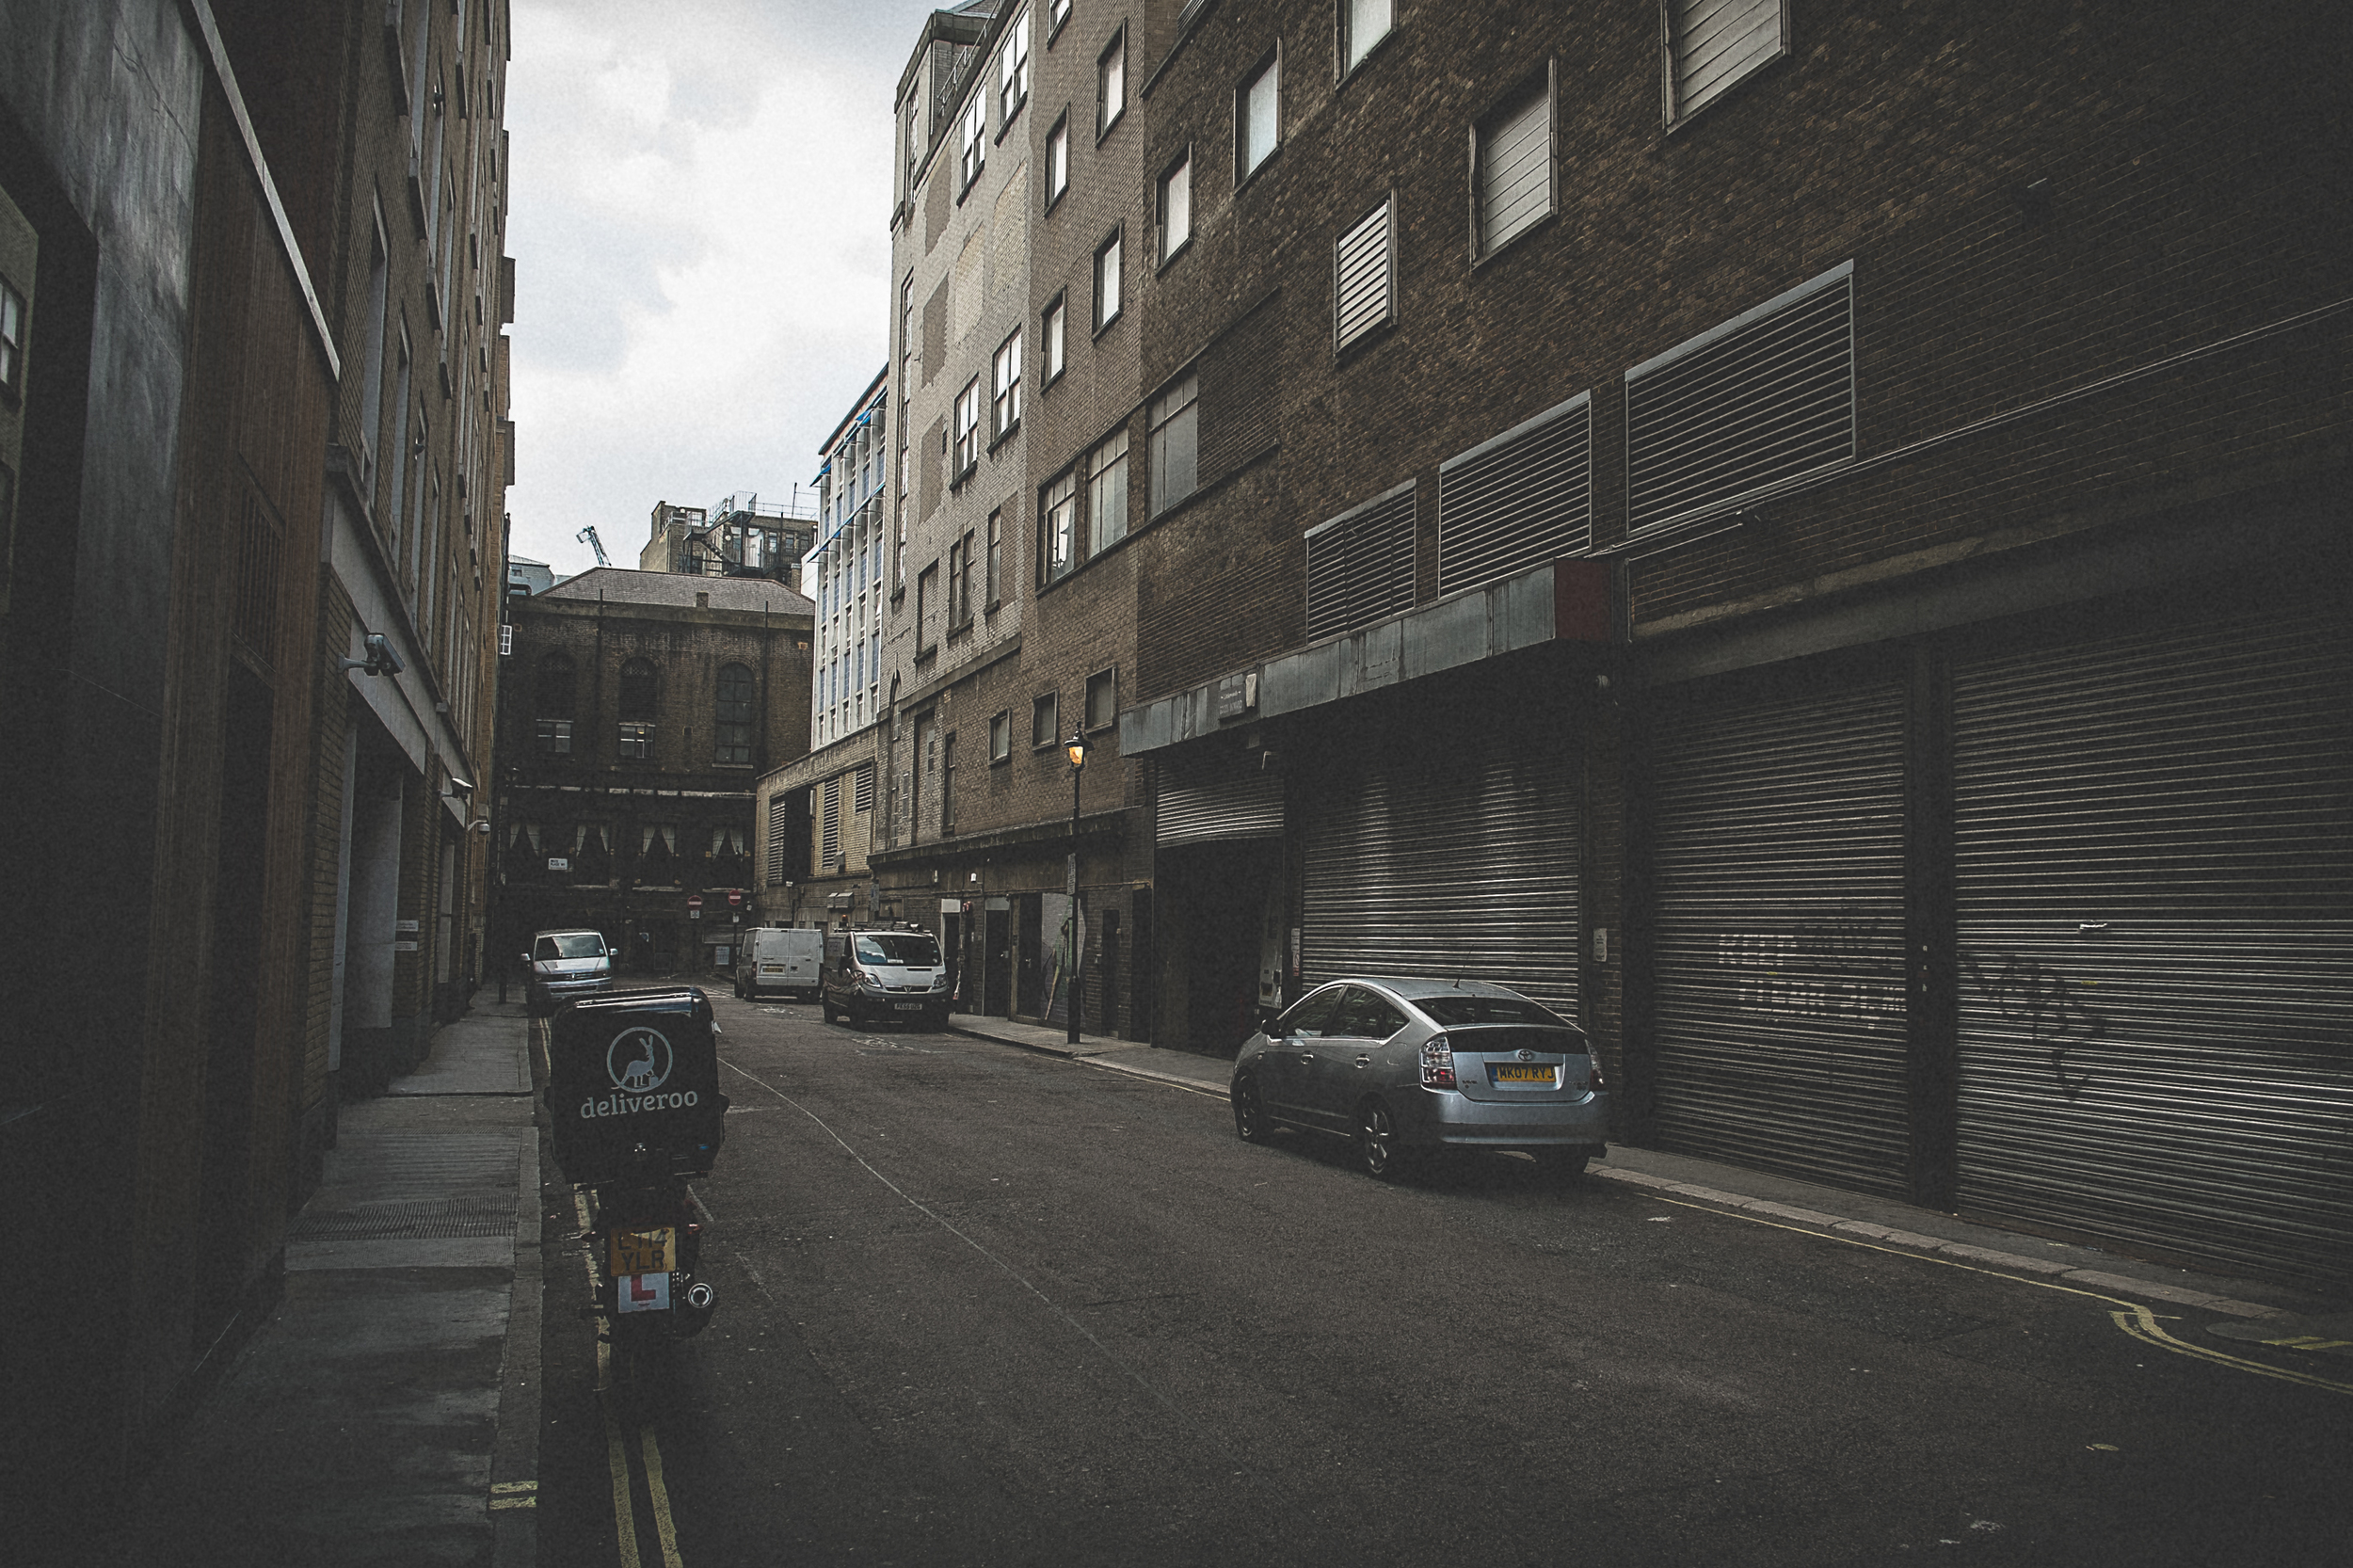 London Photography with the Fuji 18mm lens-3.jpg